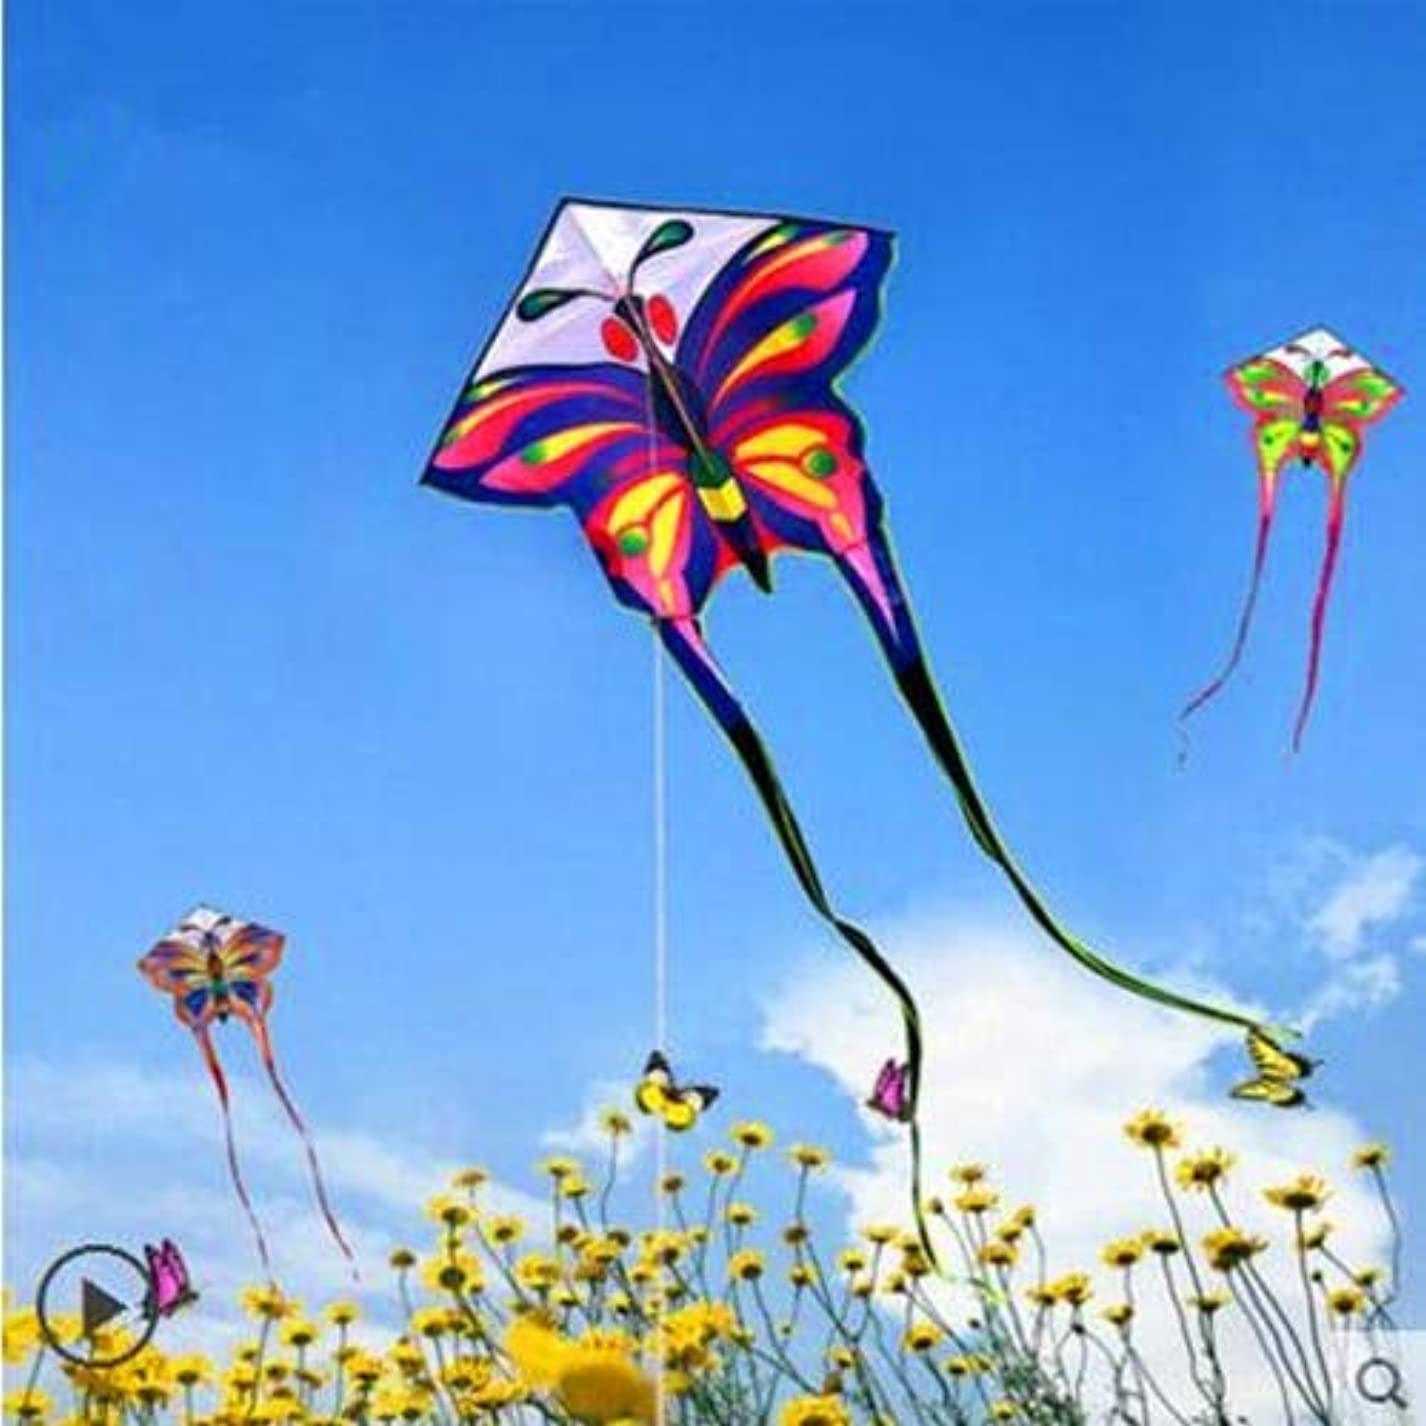 AMLJM free shipping high quality long tails butterfly kite with handle line children kite outdoor toys kite flying toys resin syr594556947963